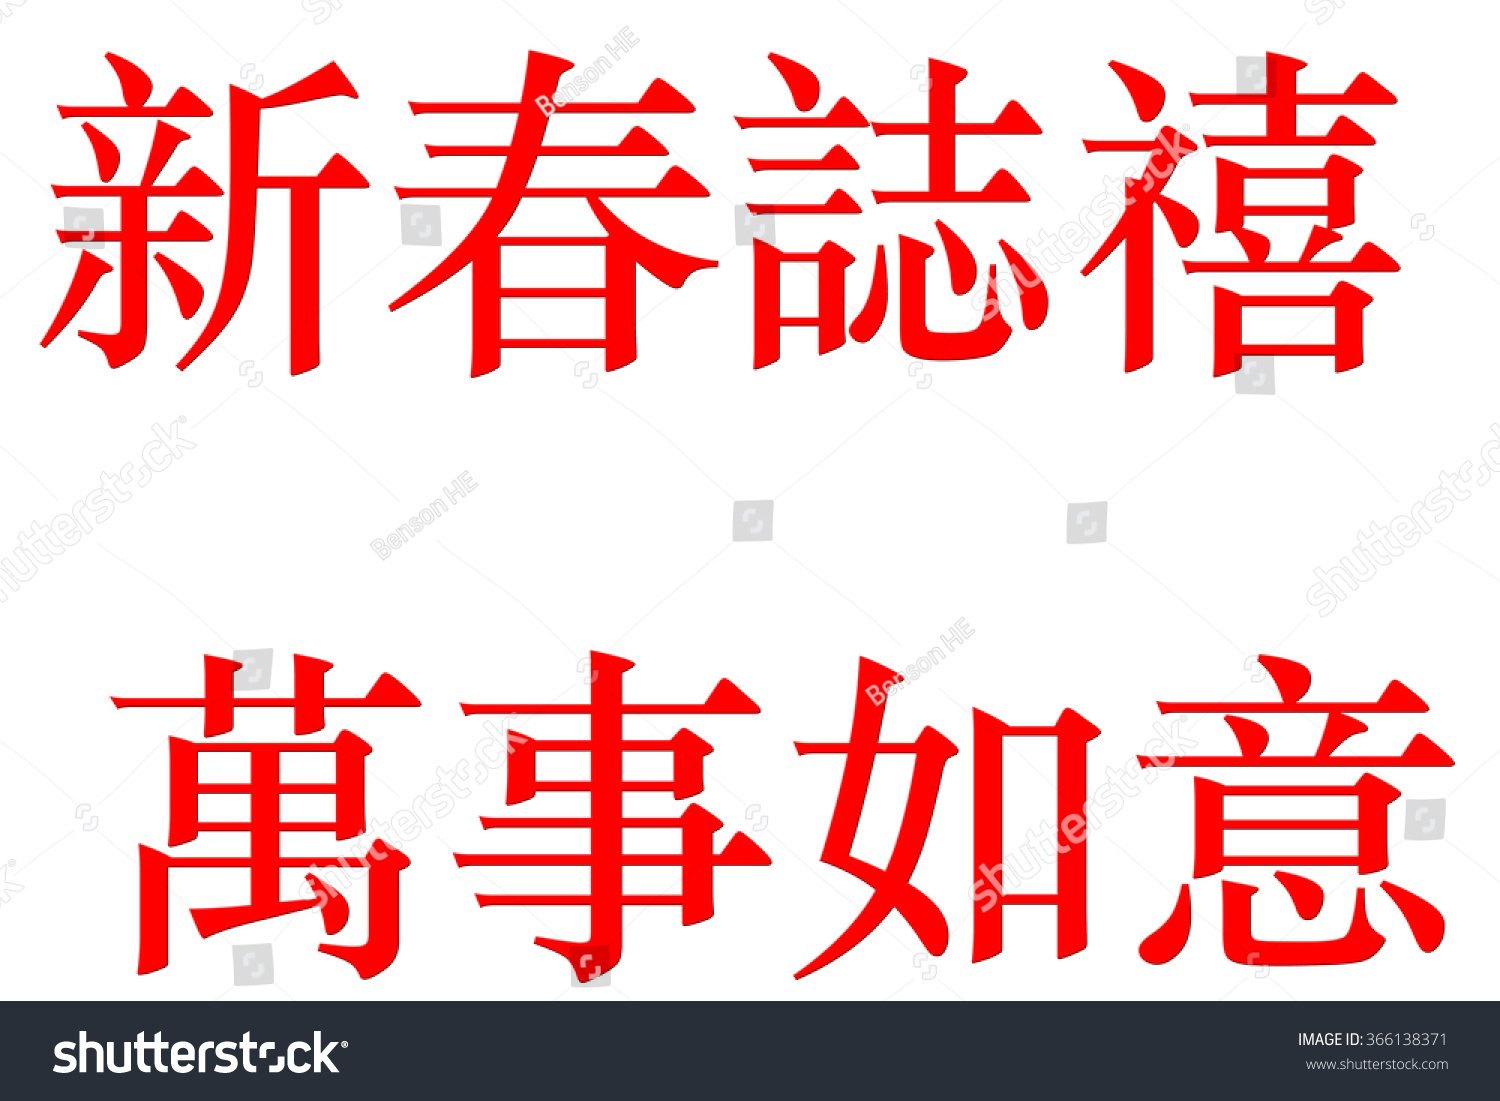 Greeting Chinese Spring Festival Chinese Calligraphy Stock ...